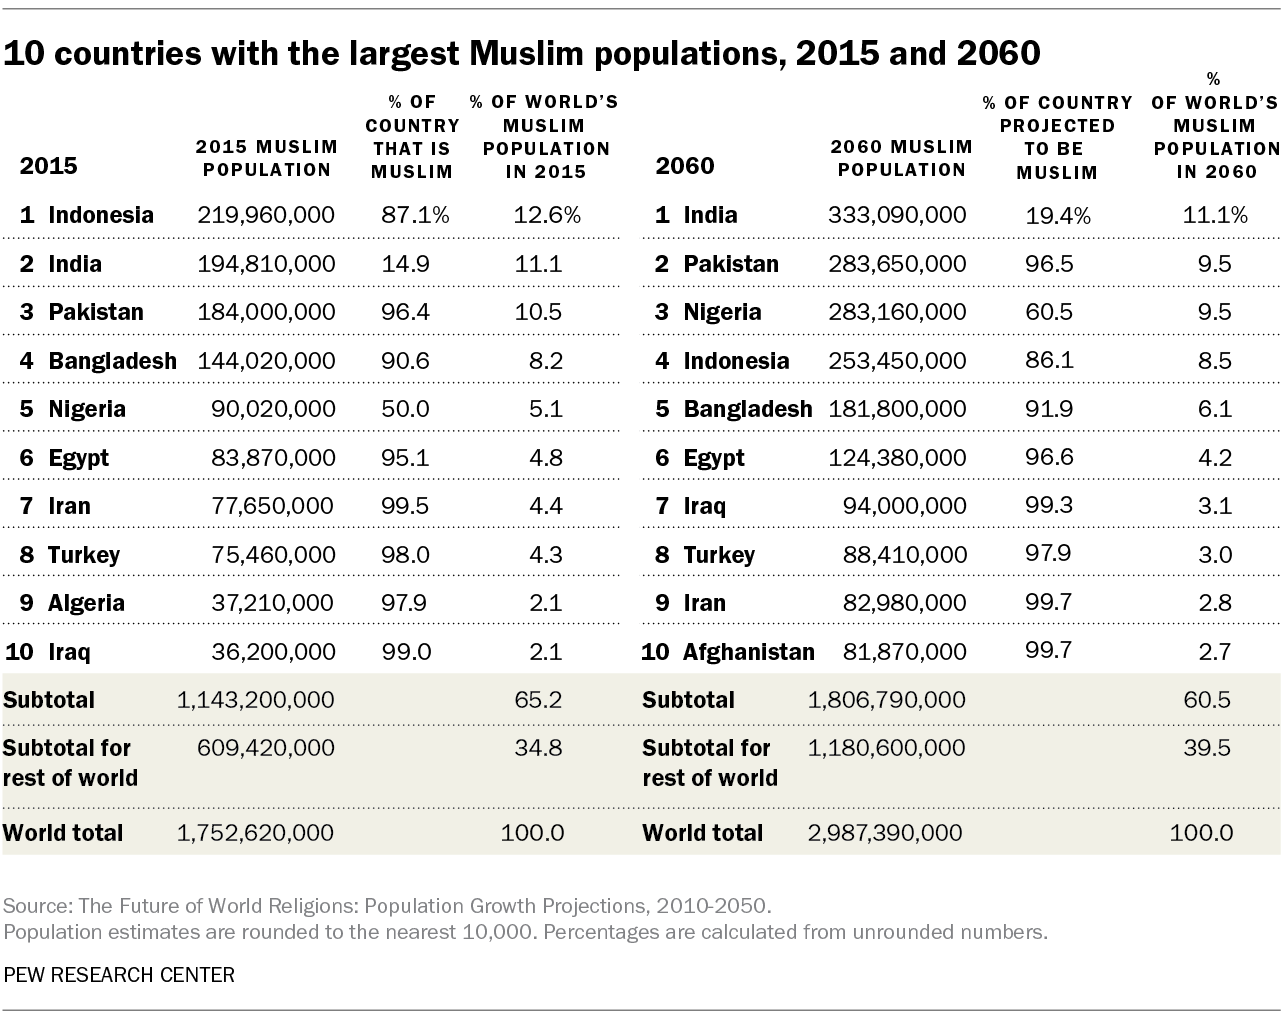 10 countries with the largest Muslim populations, 2015 and 2060